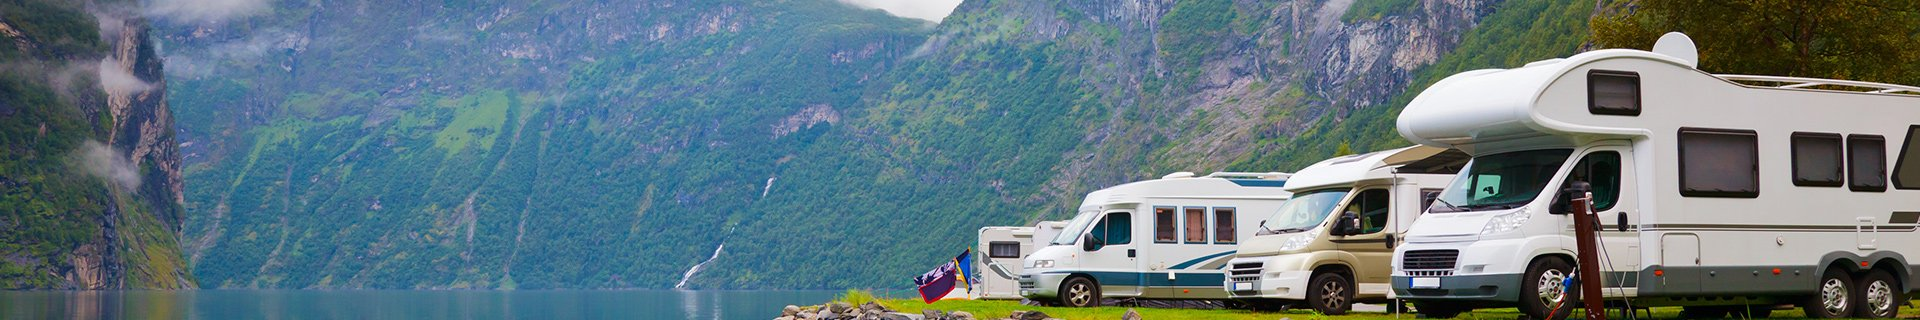 8x countryside camping with a fantastic view